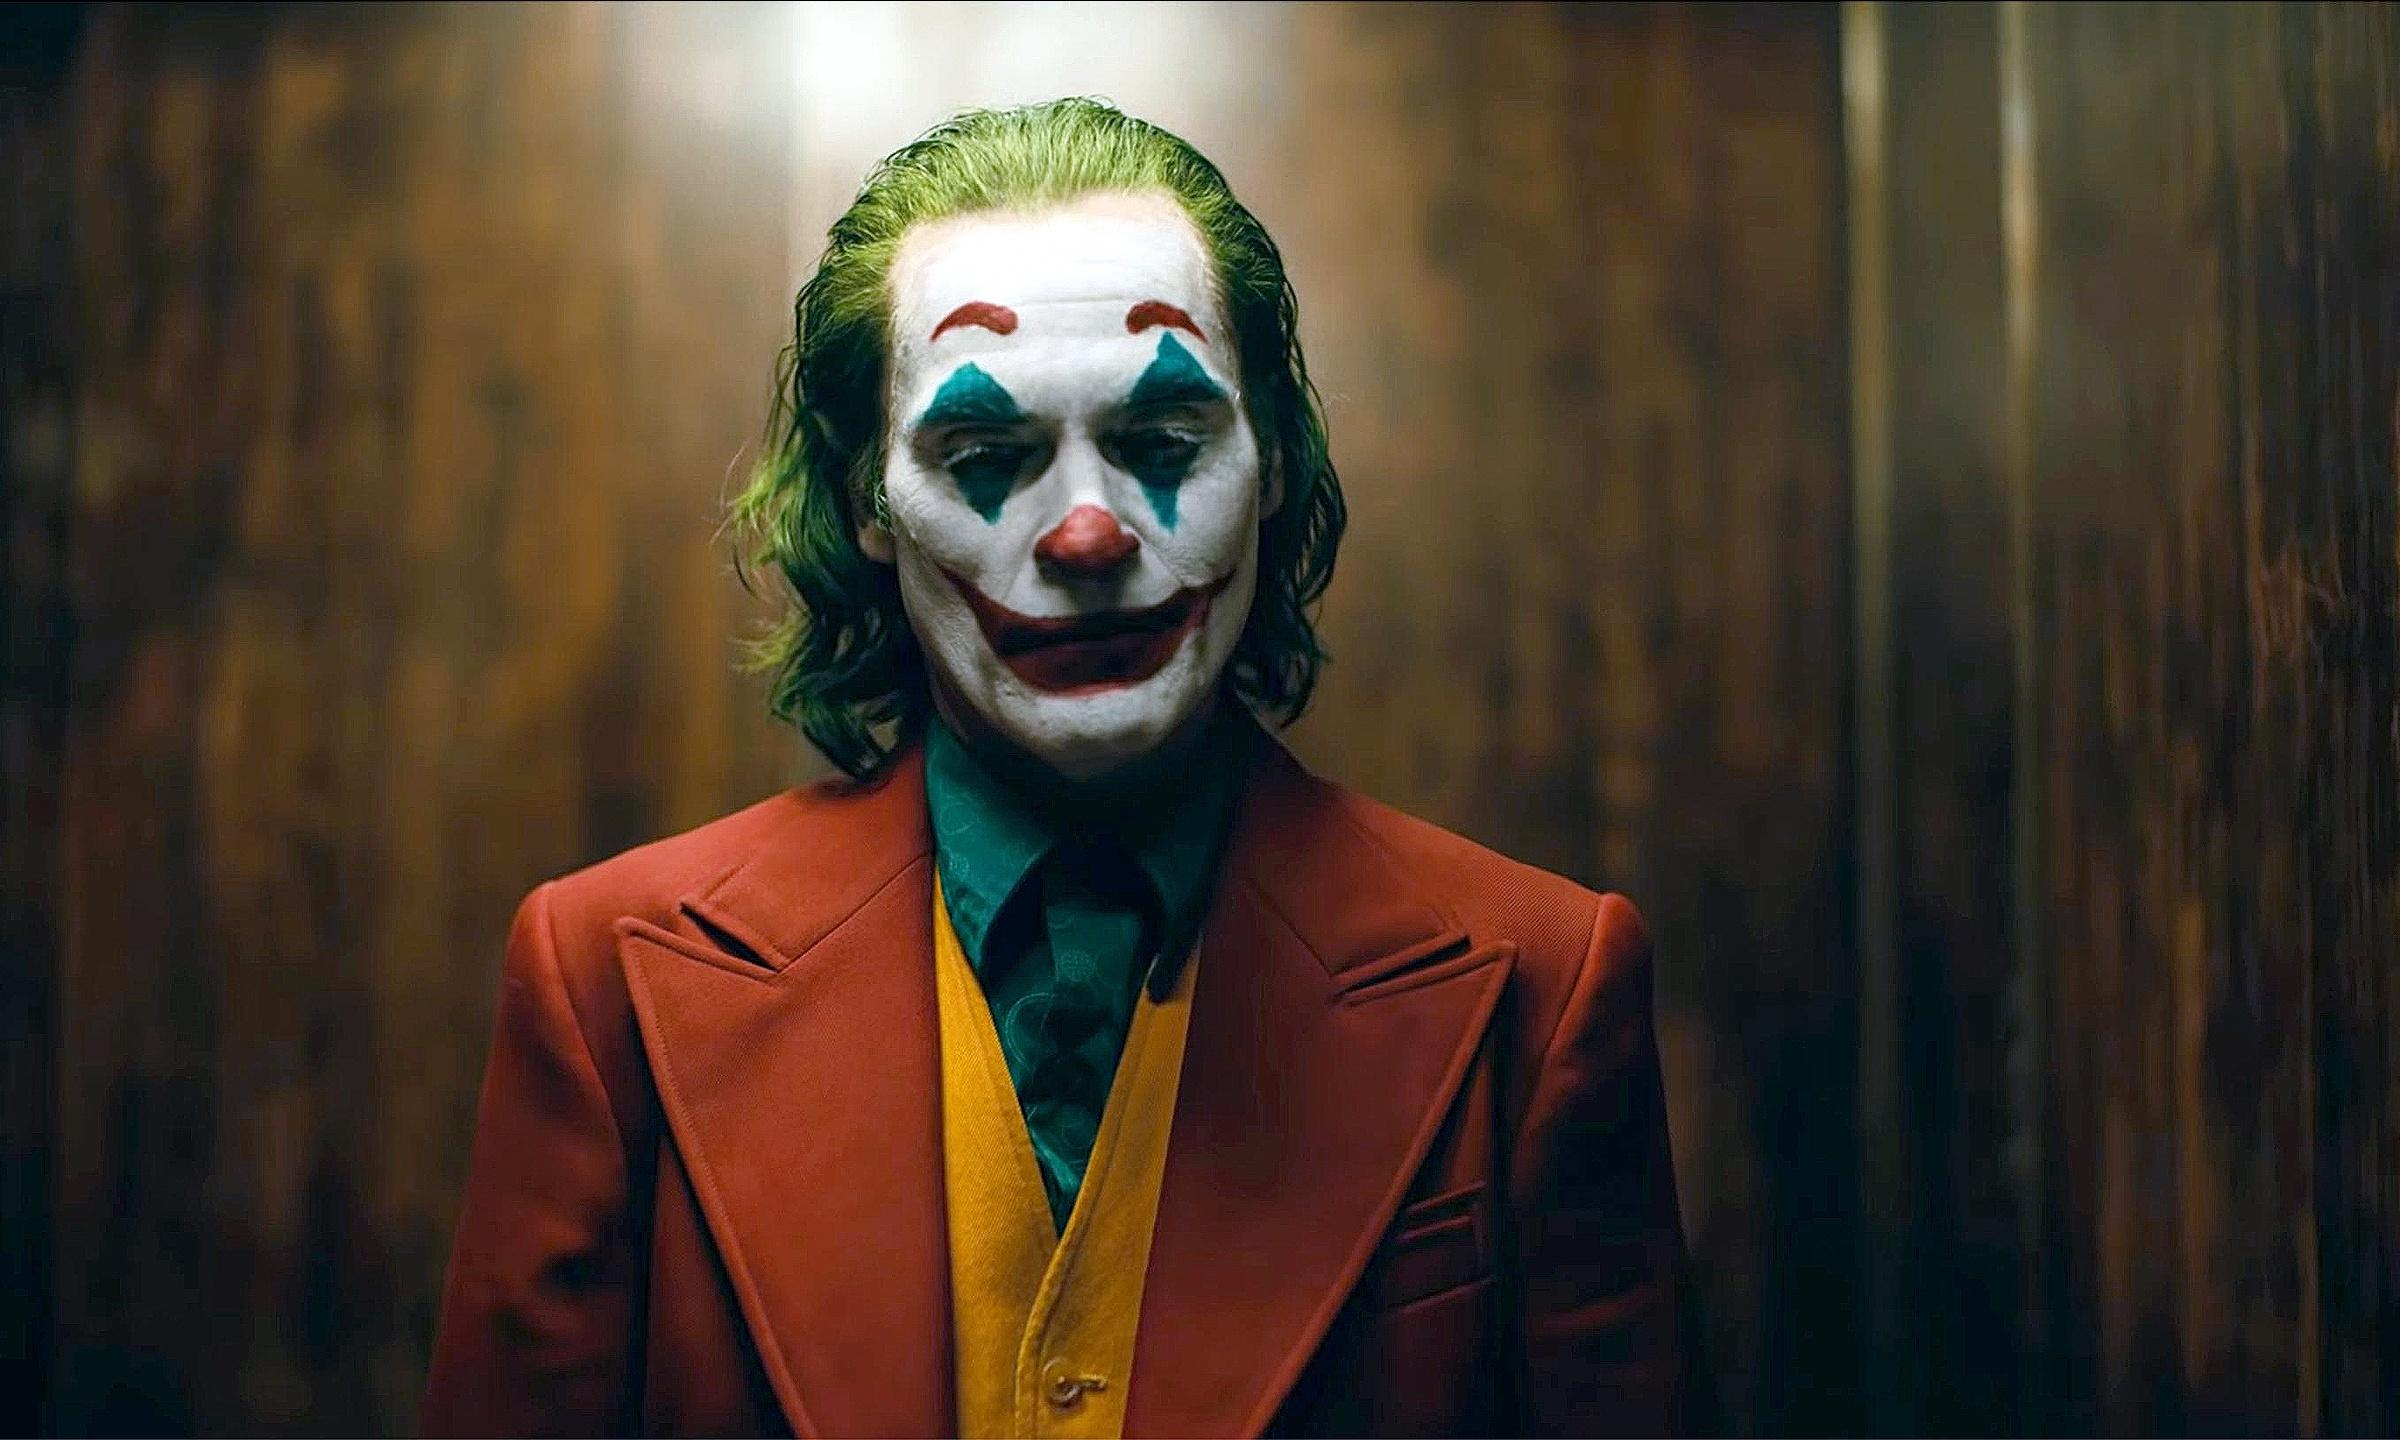 Joker review – Joaquin Phoenix's villain has last laugh in twisted tale